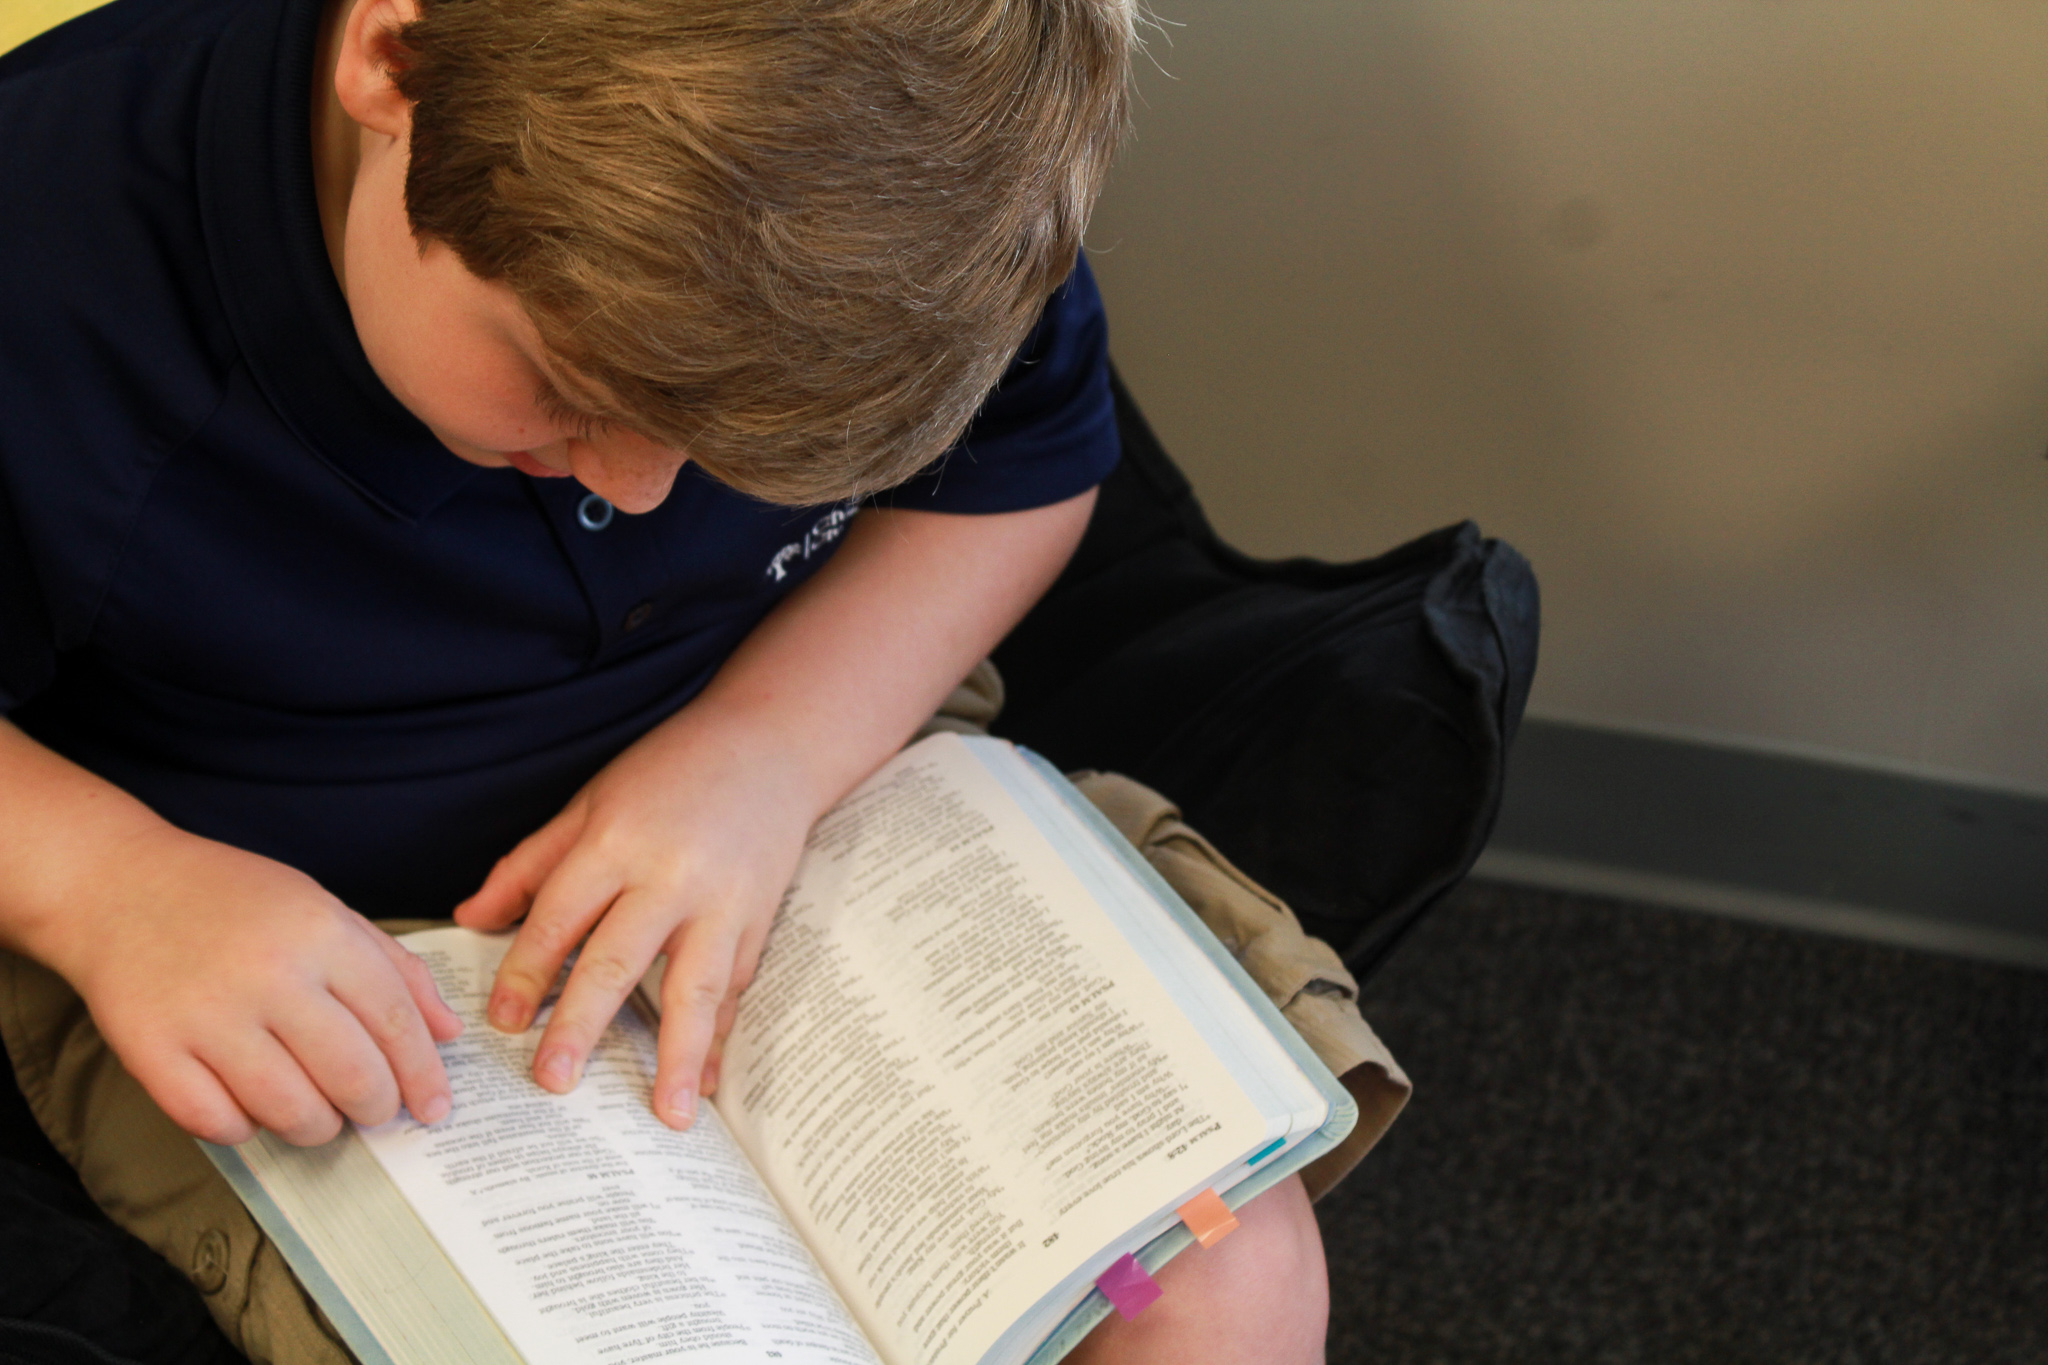 Our Curriculum… - is Faith-based. Biblical values are taught and modeled throughout each day.